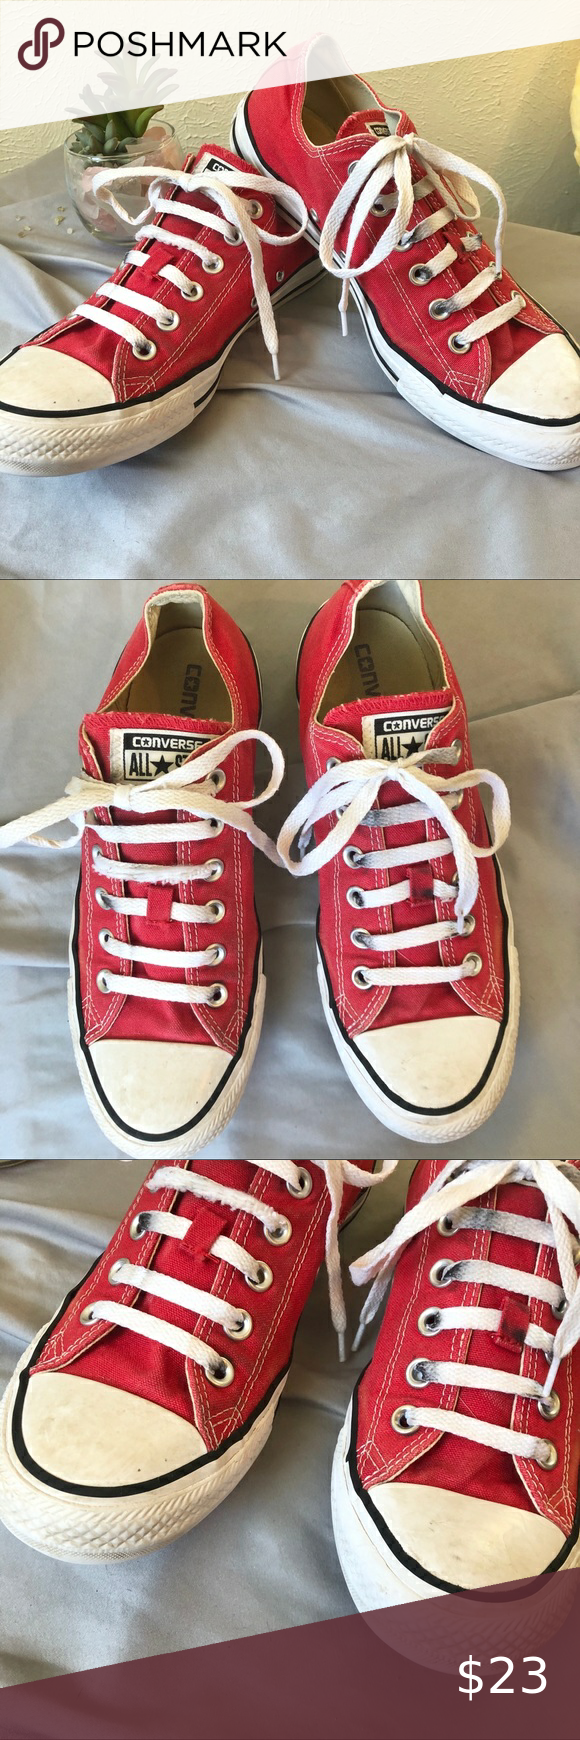 Converse Low Top Lace Up Sneakers 7M Red in 2020